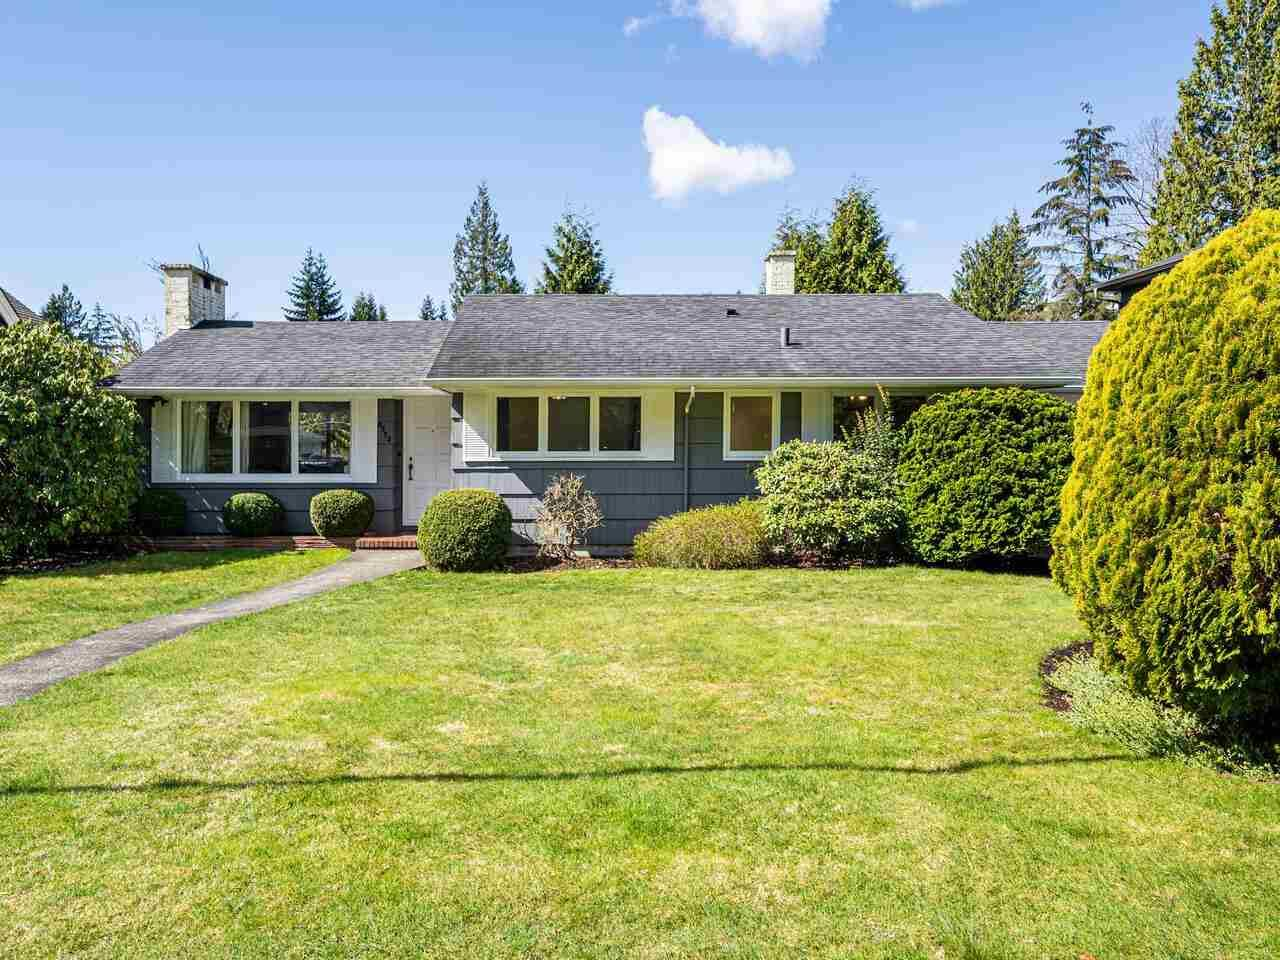 Photo of 3975 HILLCREST AVENUE, North Vancouver, BC V7R 4B7 (MLS # R2577448)